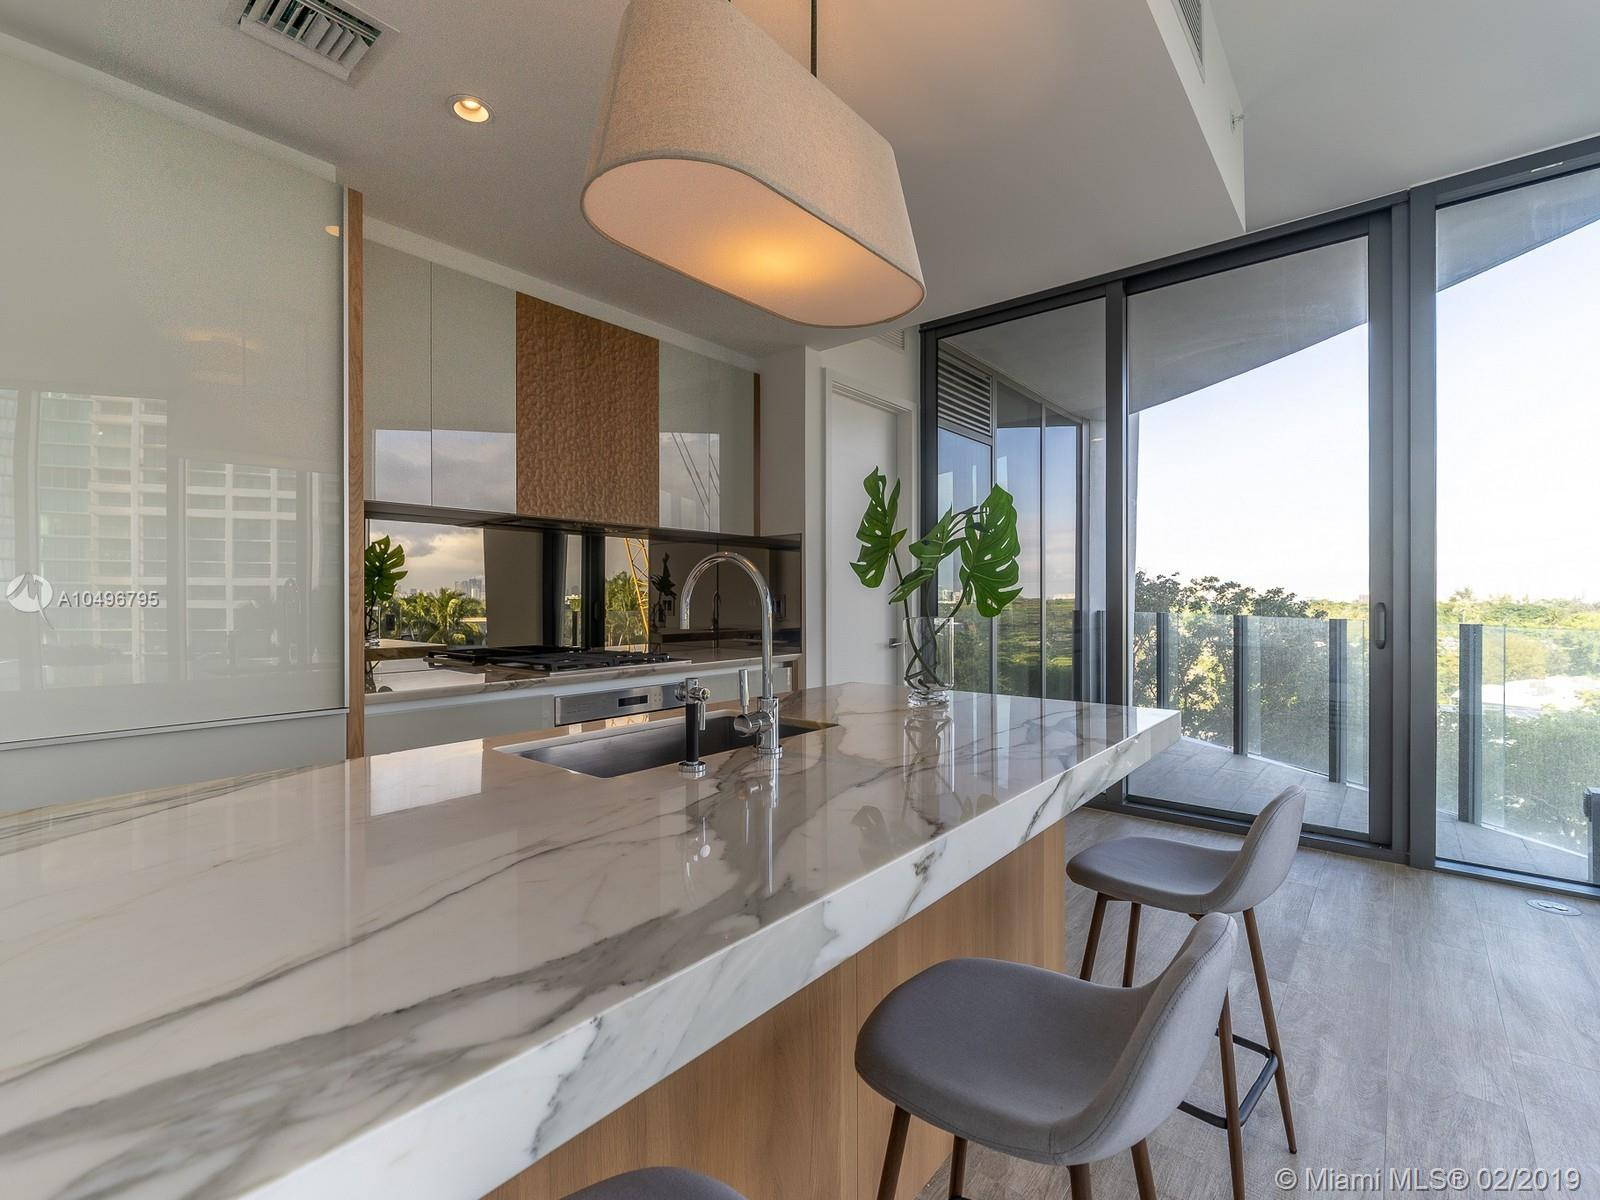 Spectacular 2/2 plus den unit with top of the line appliances and high ceilings combined with contemporary finishes in the most expected Grove Development, Park Grove Residences,  emphasizes luxury living and first class amenities in a very tranquil design environment that provide residents with a unique Experience. Newly Built and Designed by Pritzker Price winning architect Rem Koolhaas/OMA and landscape designer Enzo Enea, Park Grove is definitely Grove luxury living at its Best.